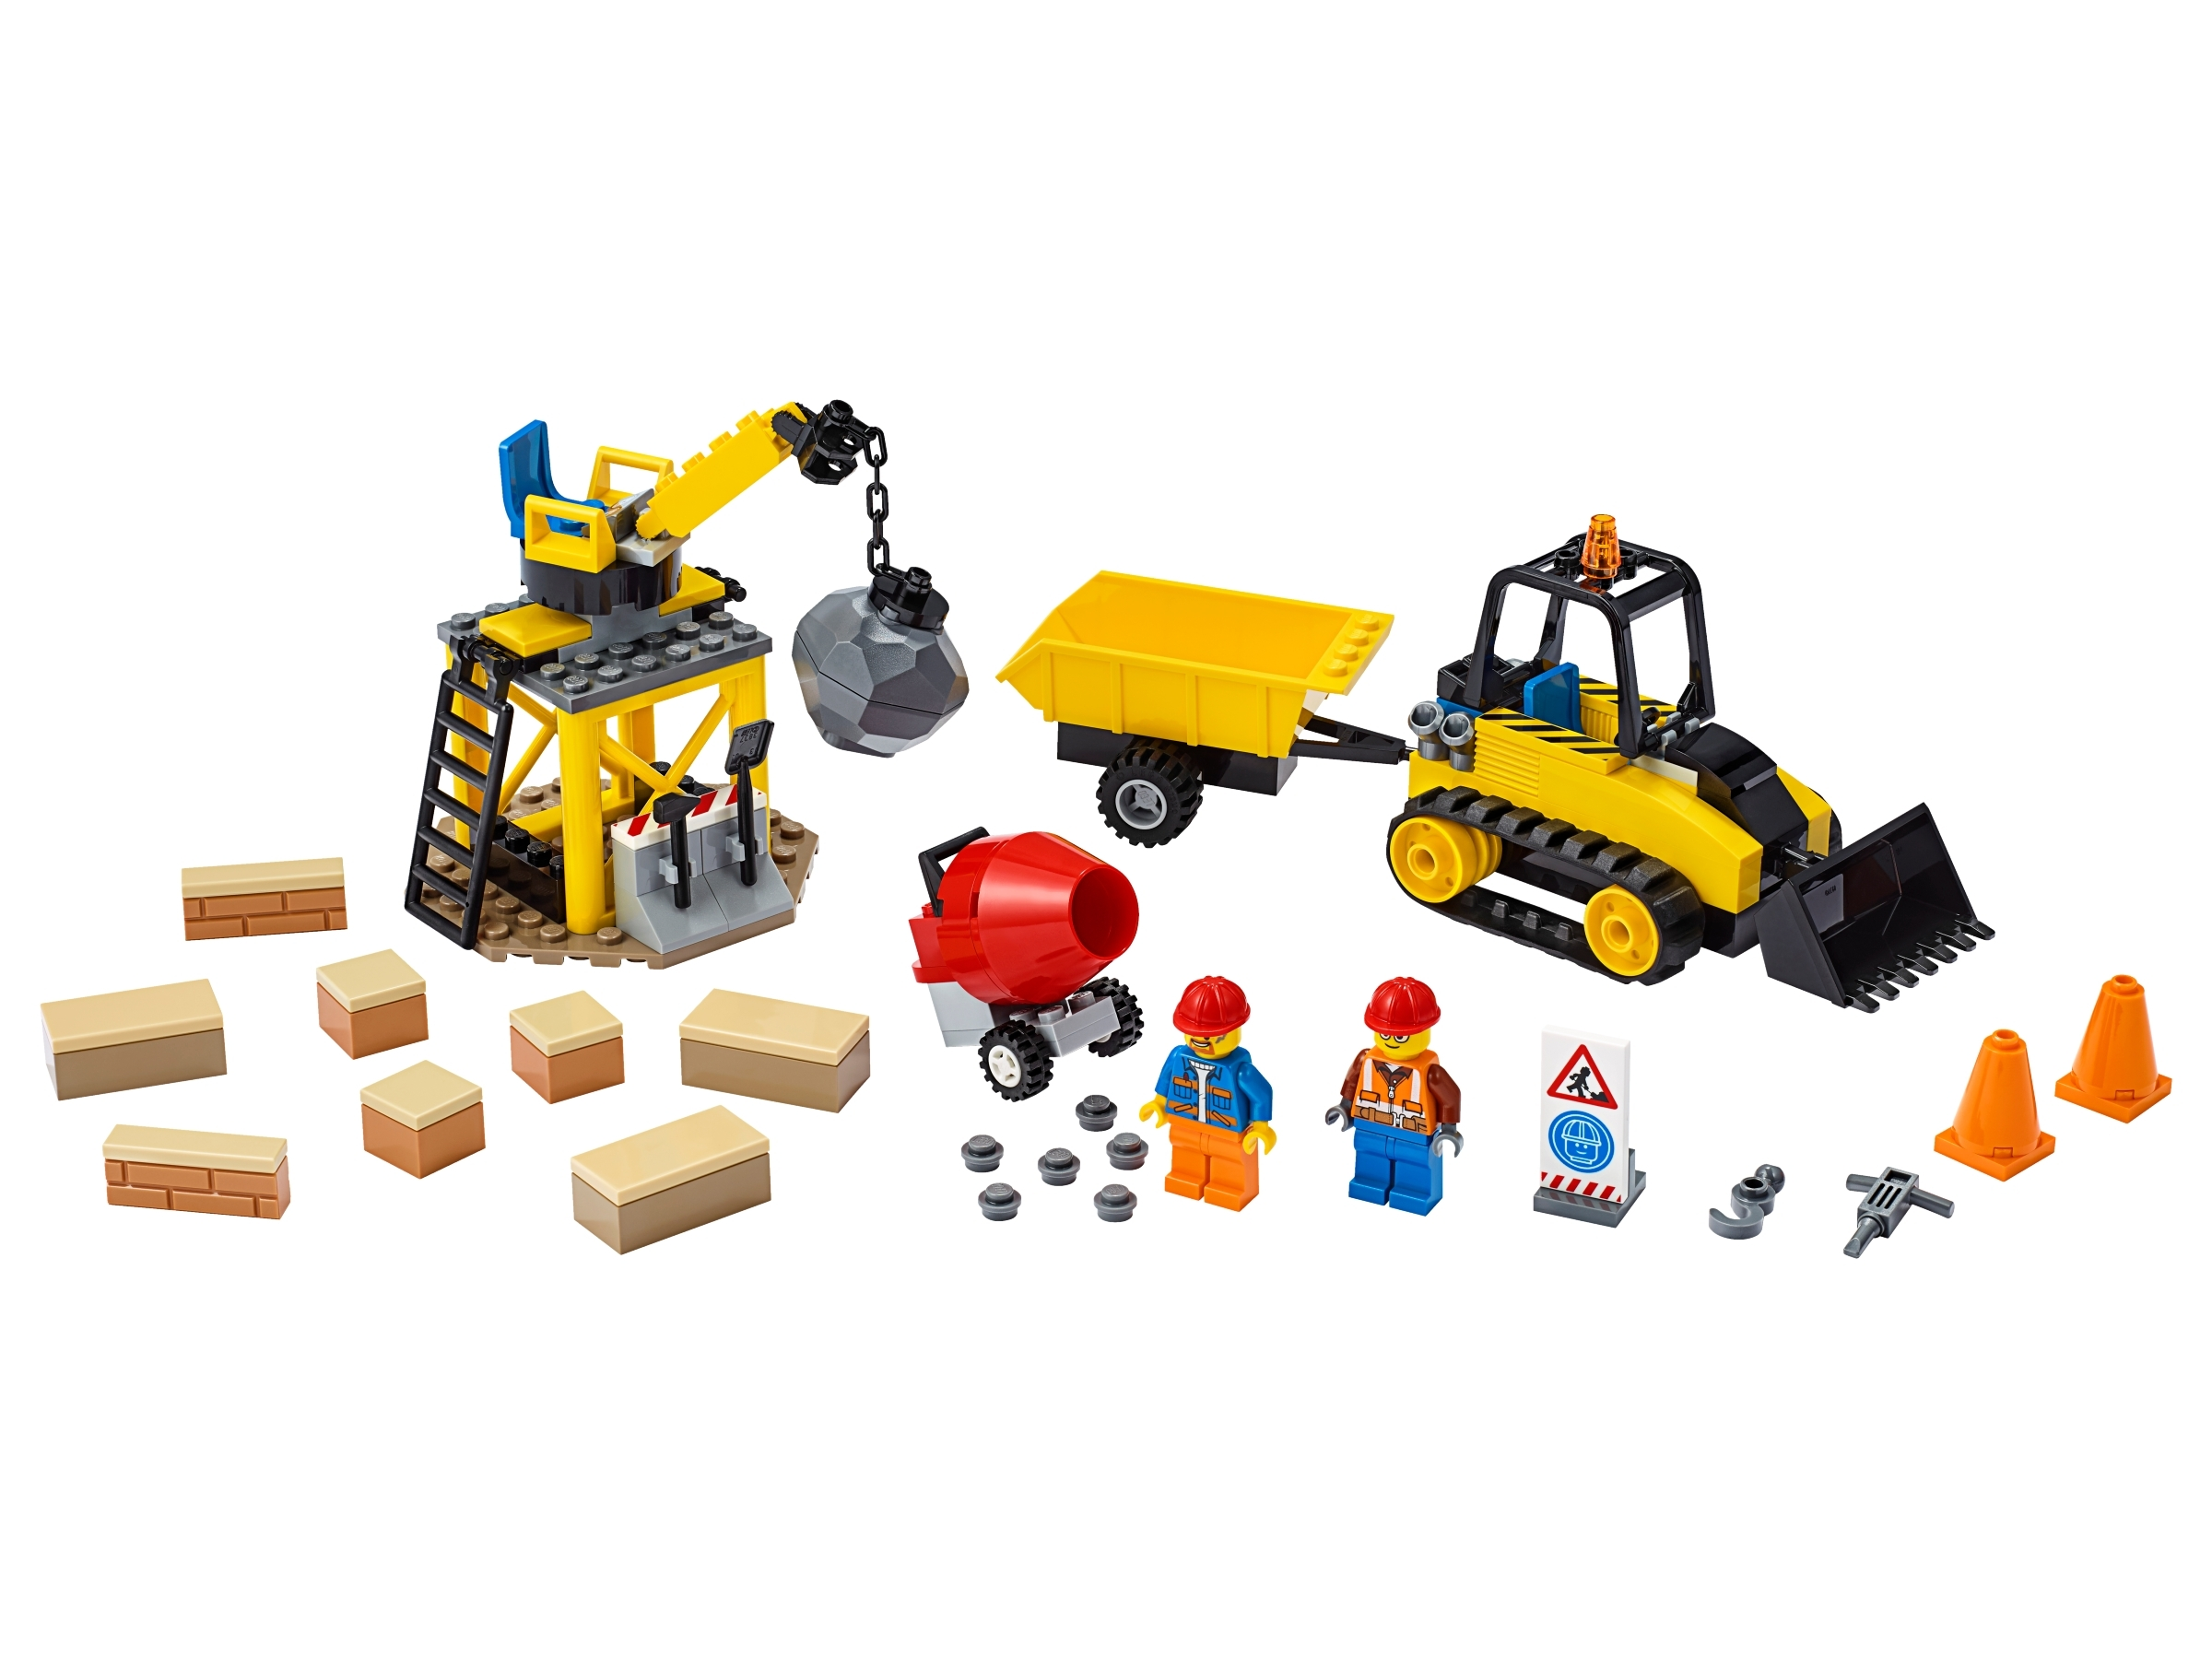 cty1025 Großvater 60234 LEGO® Minifigs City